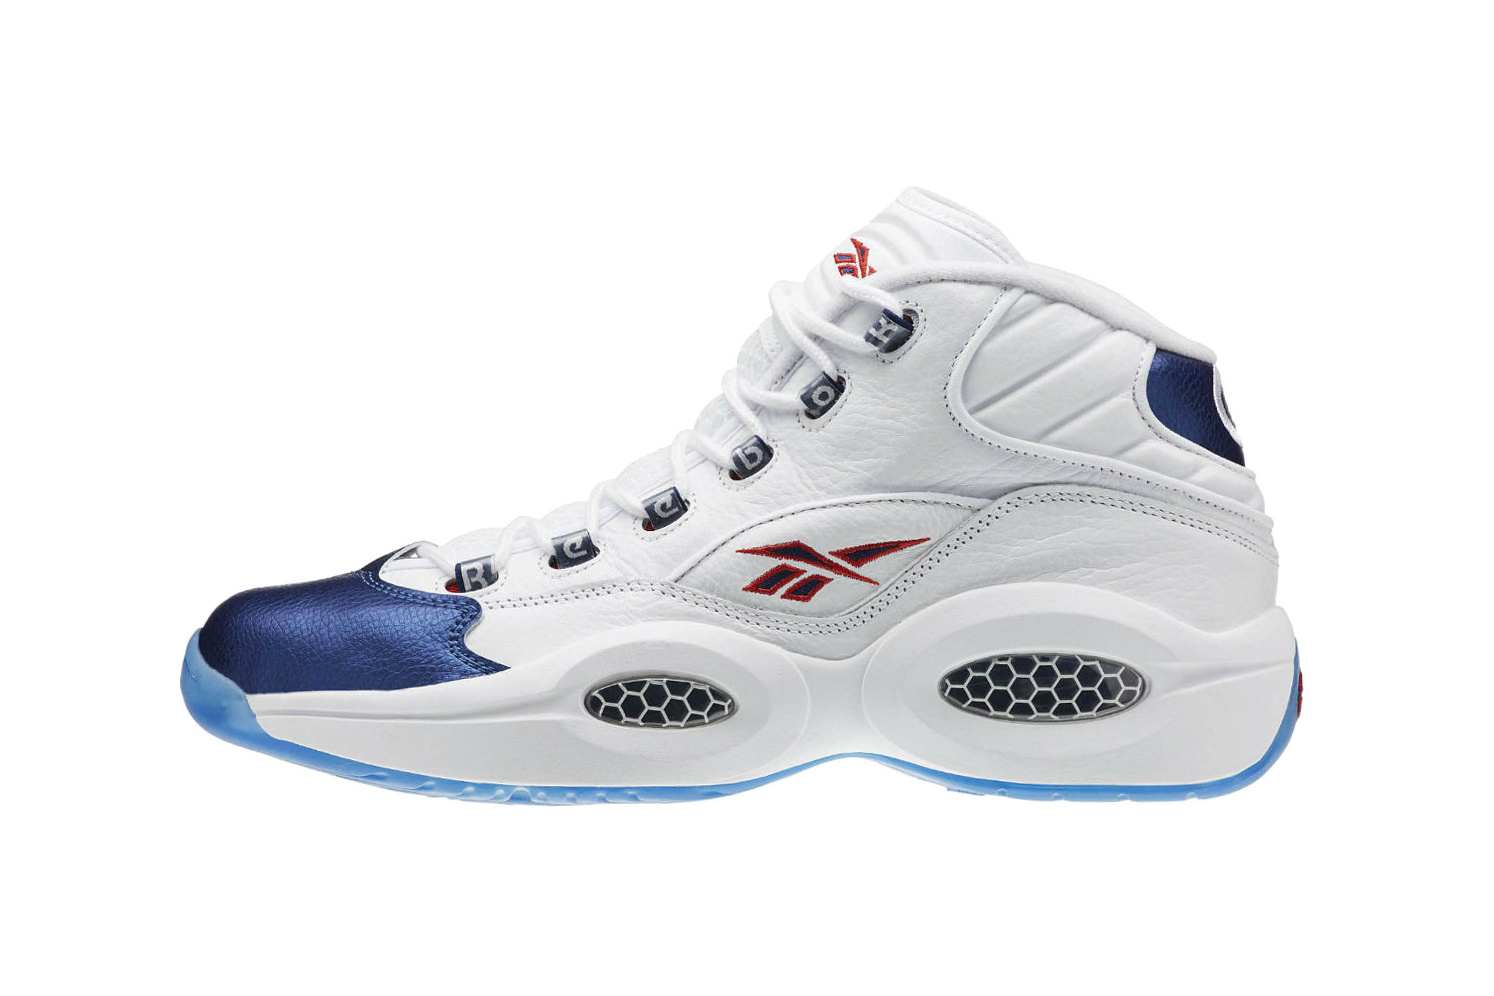 Reebok Question Mid Unforgettable Retro - TRENDS periodical